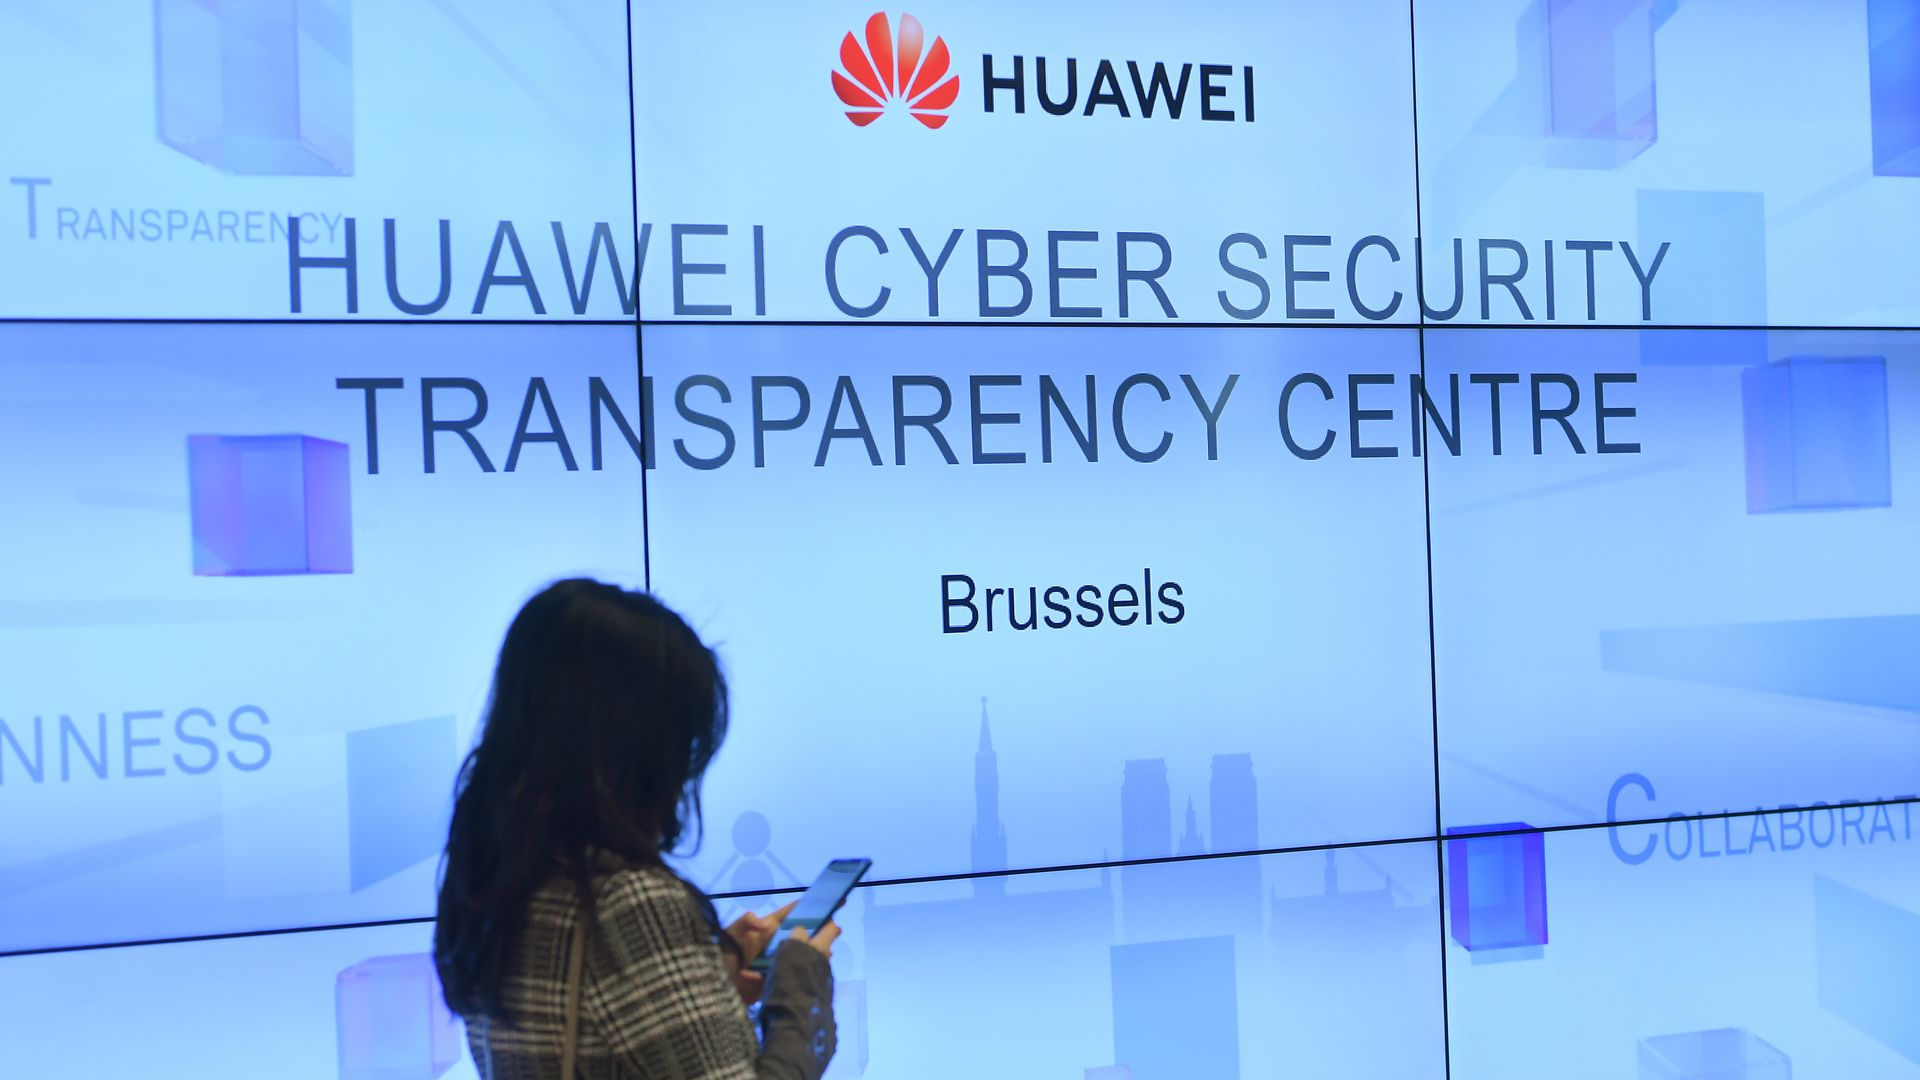 Huawei Cybersecurity Center on May 21, 2019 in Brussels